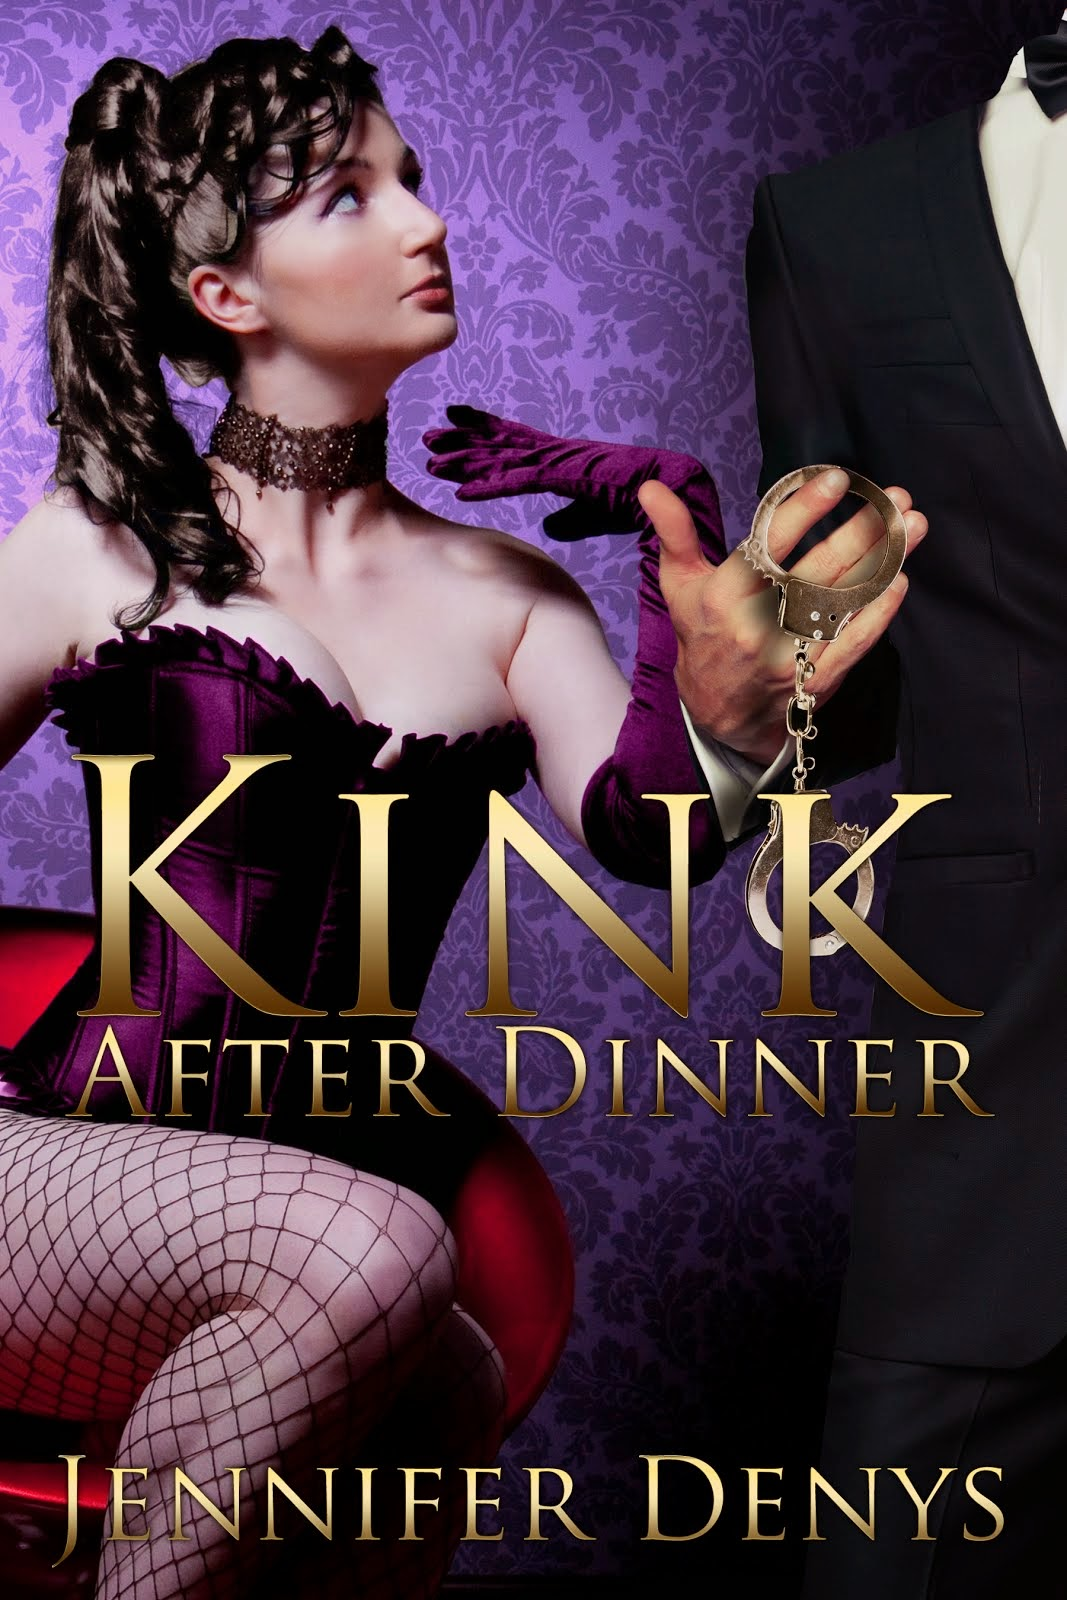 Kink After Dinner is now out!